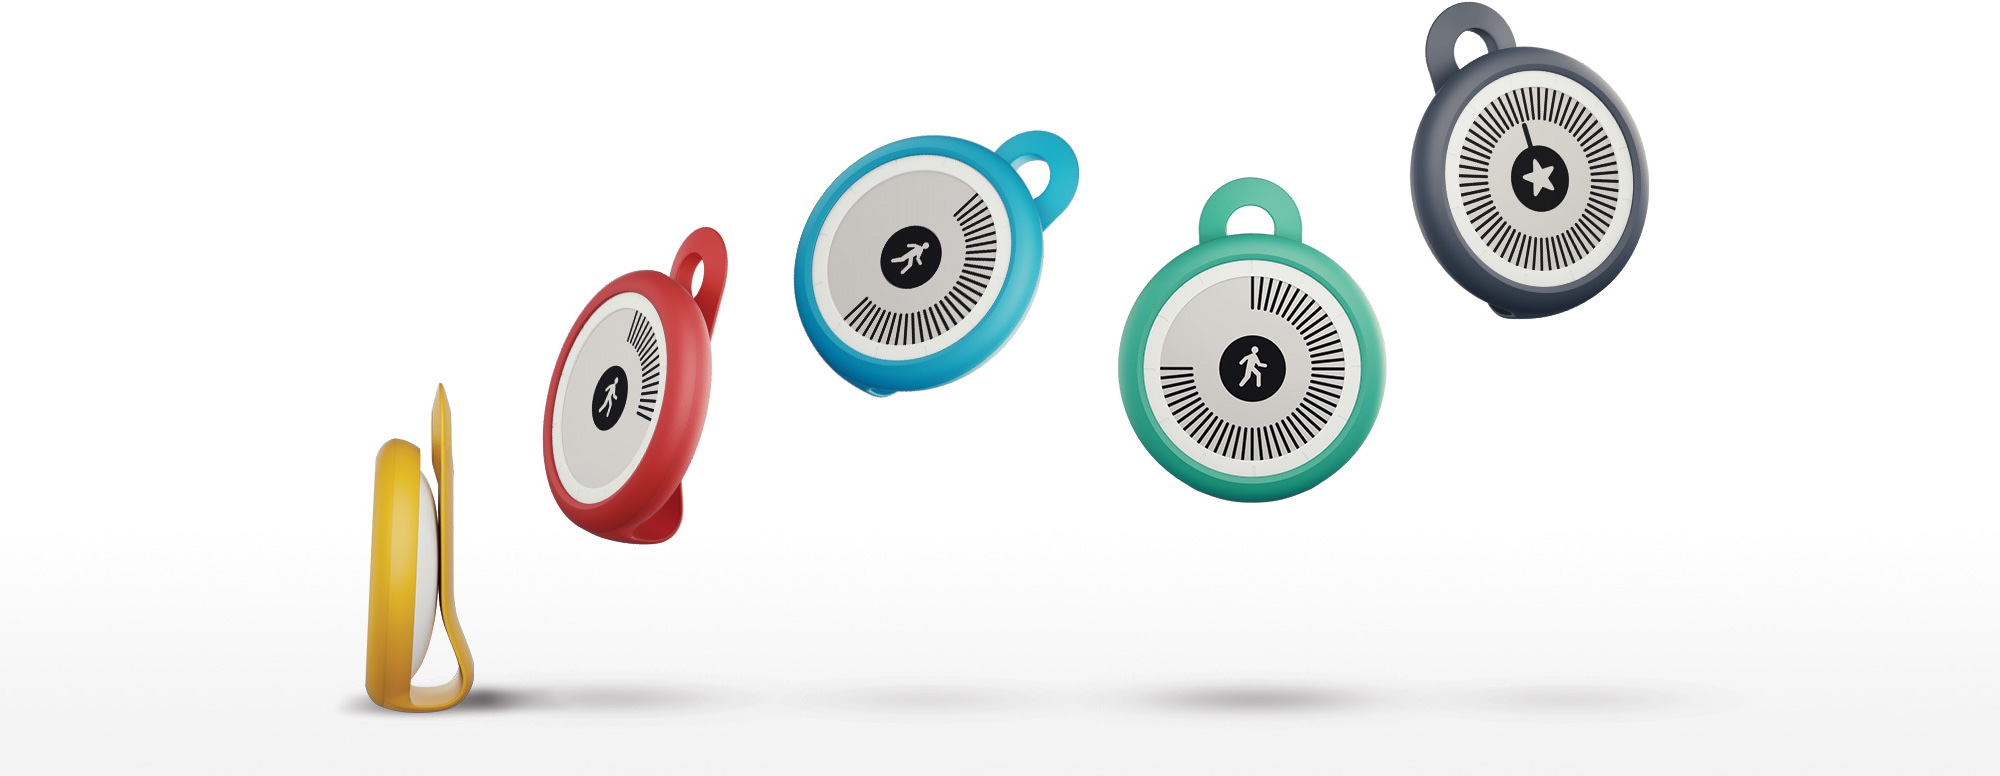 Go   Withings